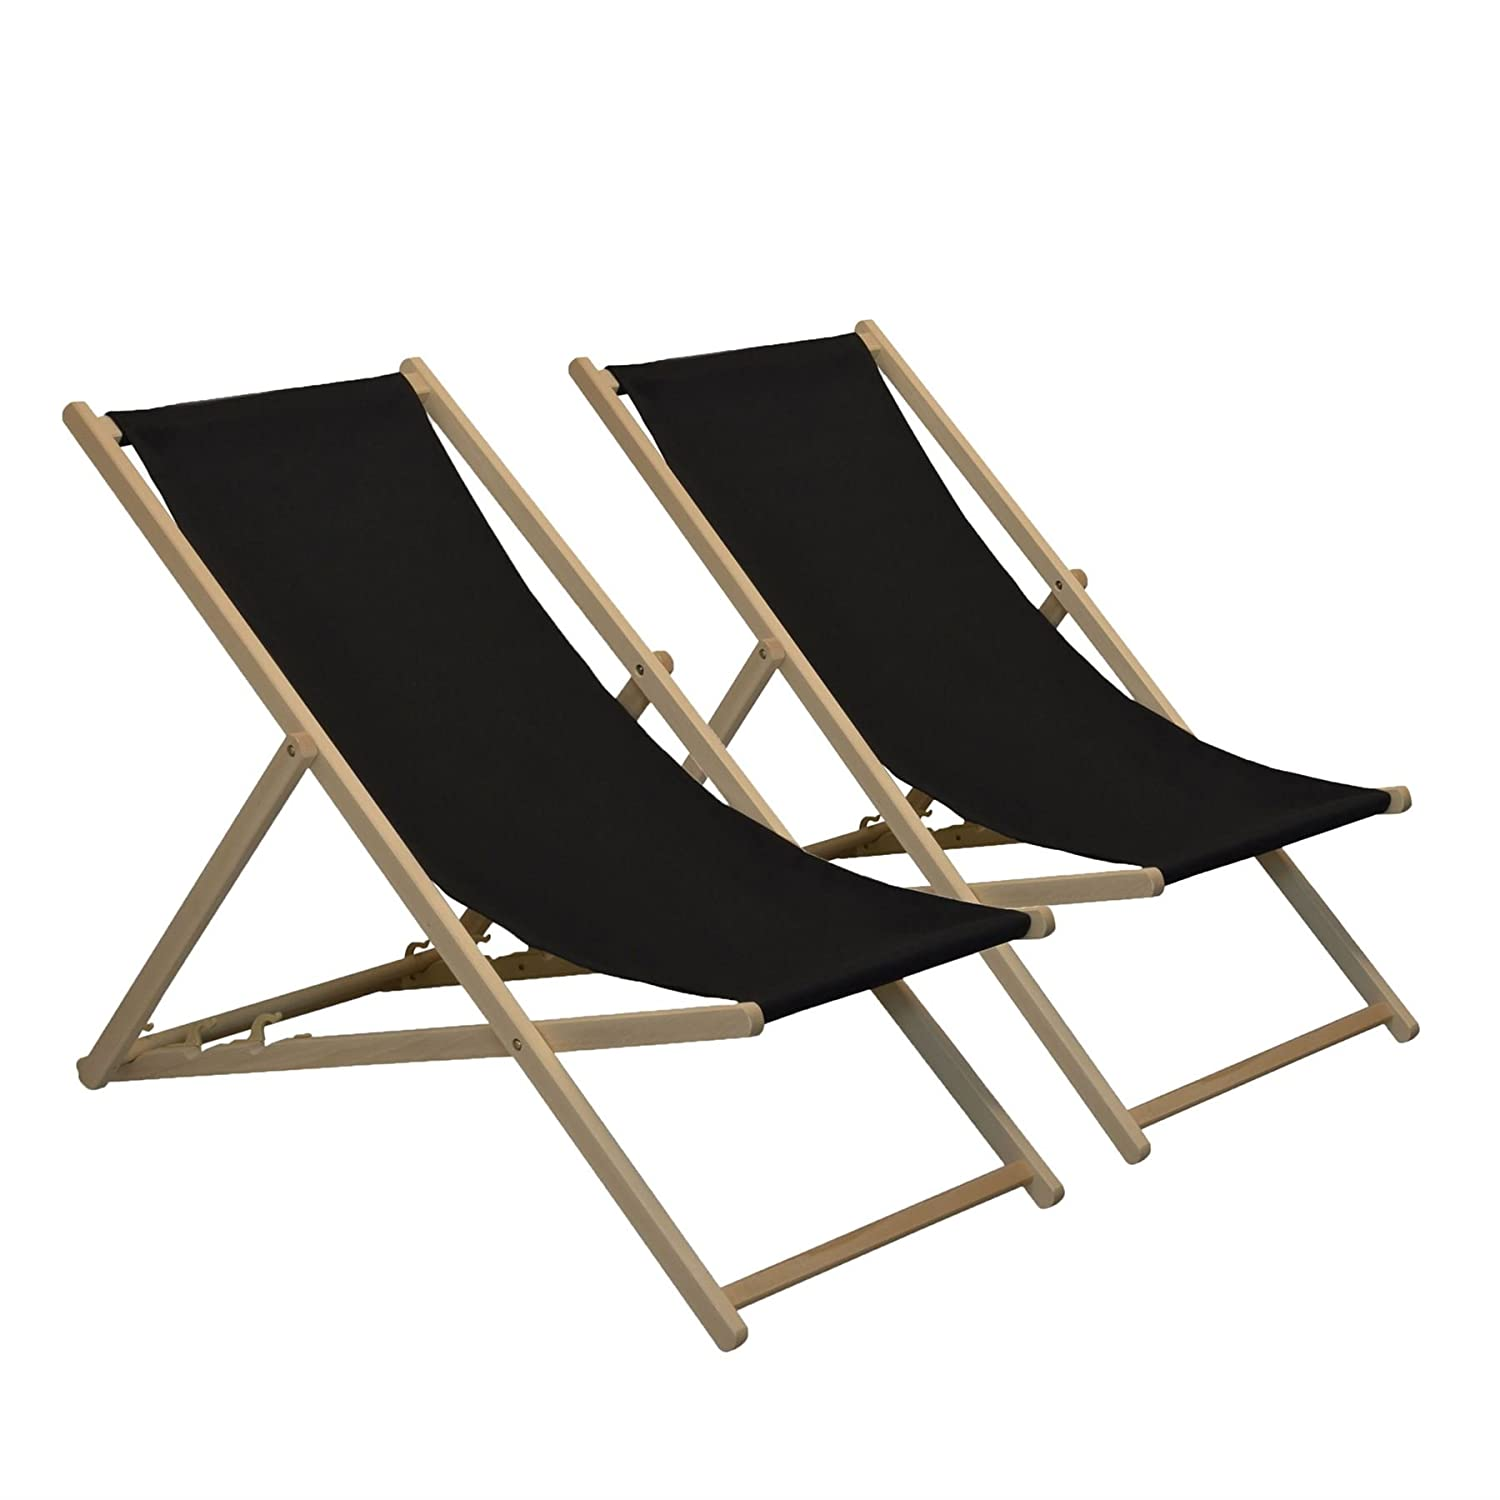 Traditional Adjustable Garden / Beach-style Deck Chair - Black - Pack of 2 Harbour Housewares